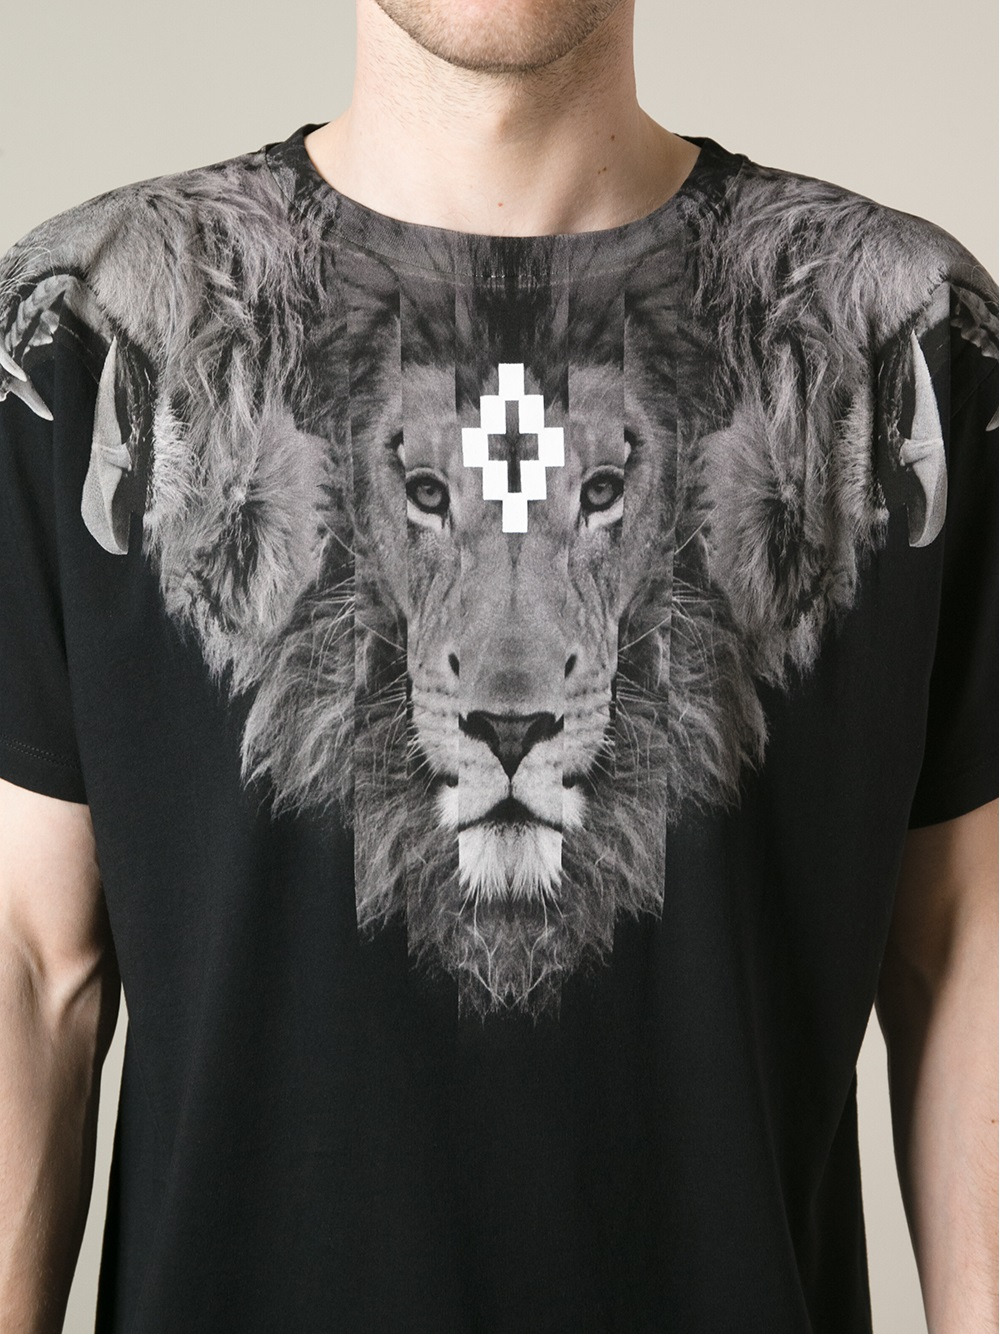 Lyst  Marcelo burlon Lion Print Tshirt in Black for Men